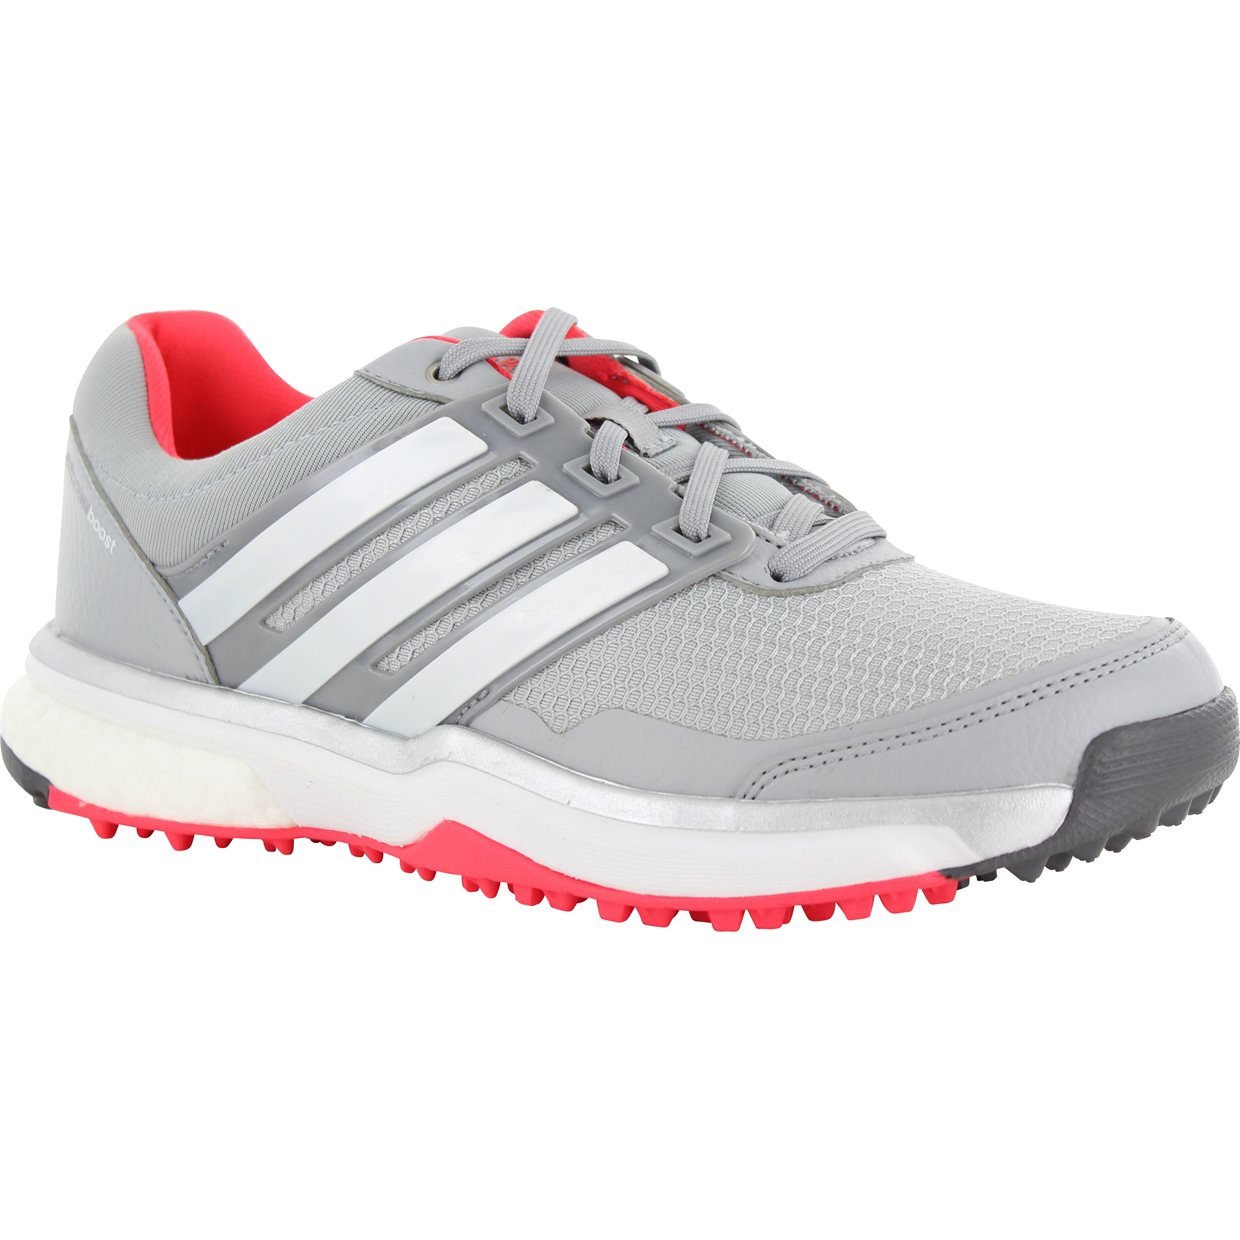 1363c8c89ecaa New Adidas 2016 Adipower Boost 2 Sport Womens Golf Shoes - Pick Size ...